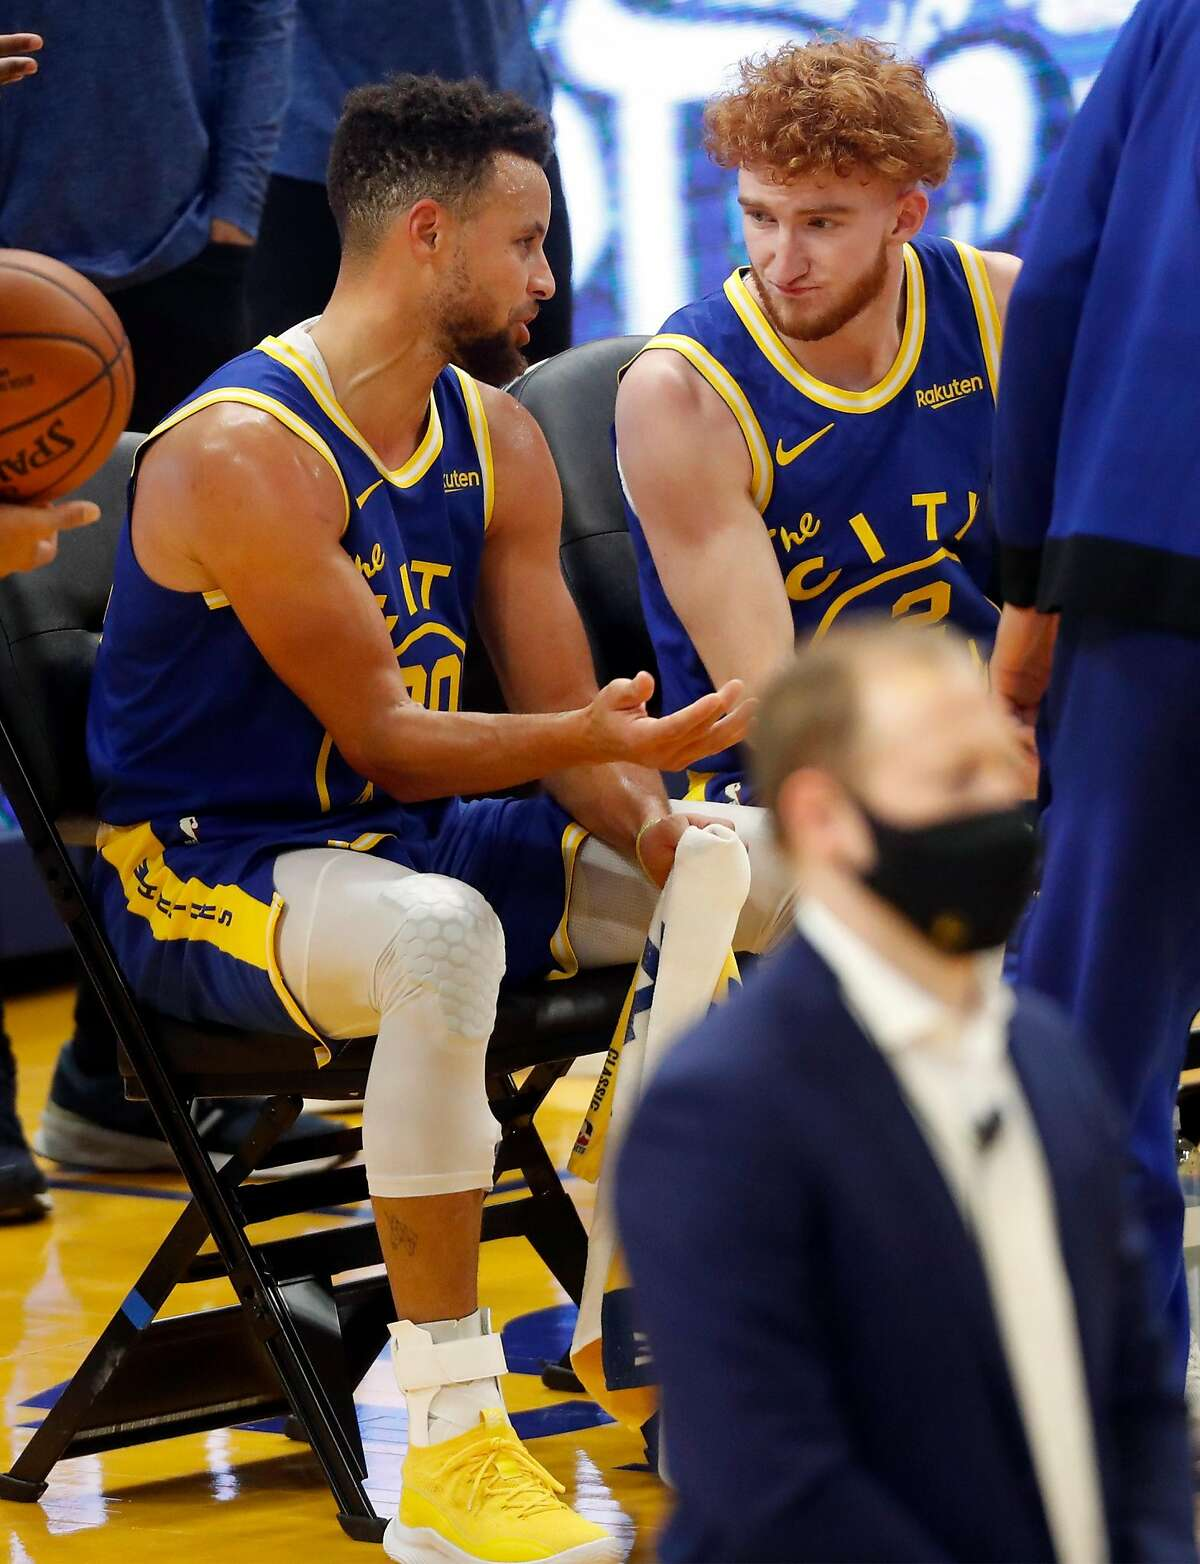 Stephen Curry talks with Warriors' backup point guard Nico Mannion during a timeout in a Jan. 21 game against New York at Chase Center.